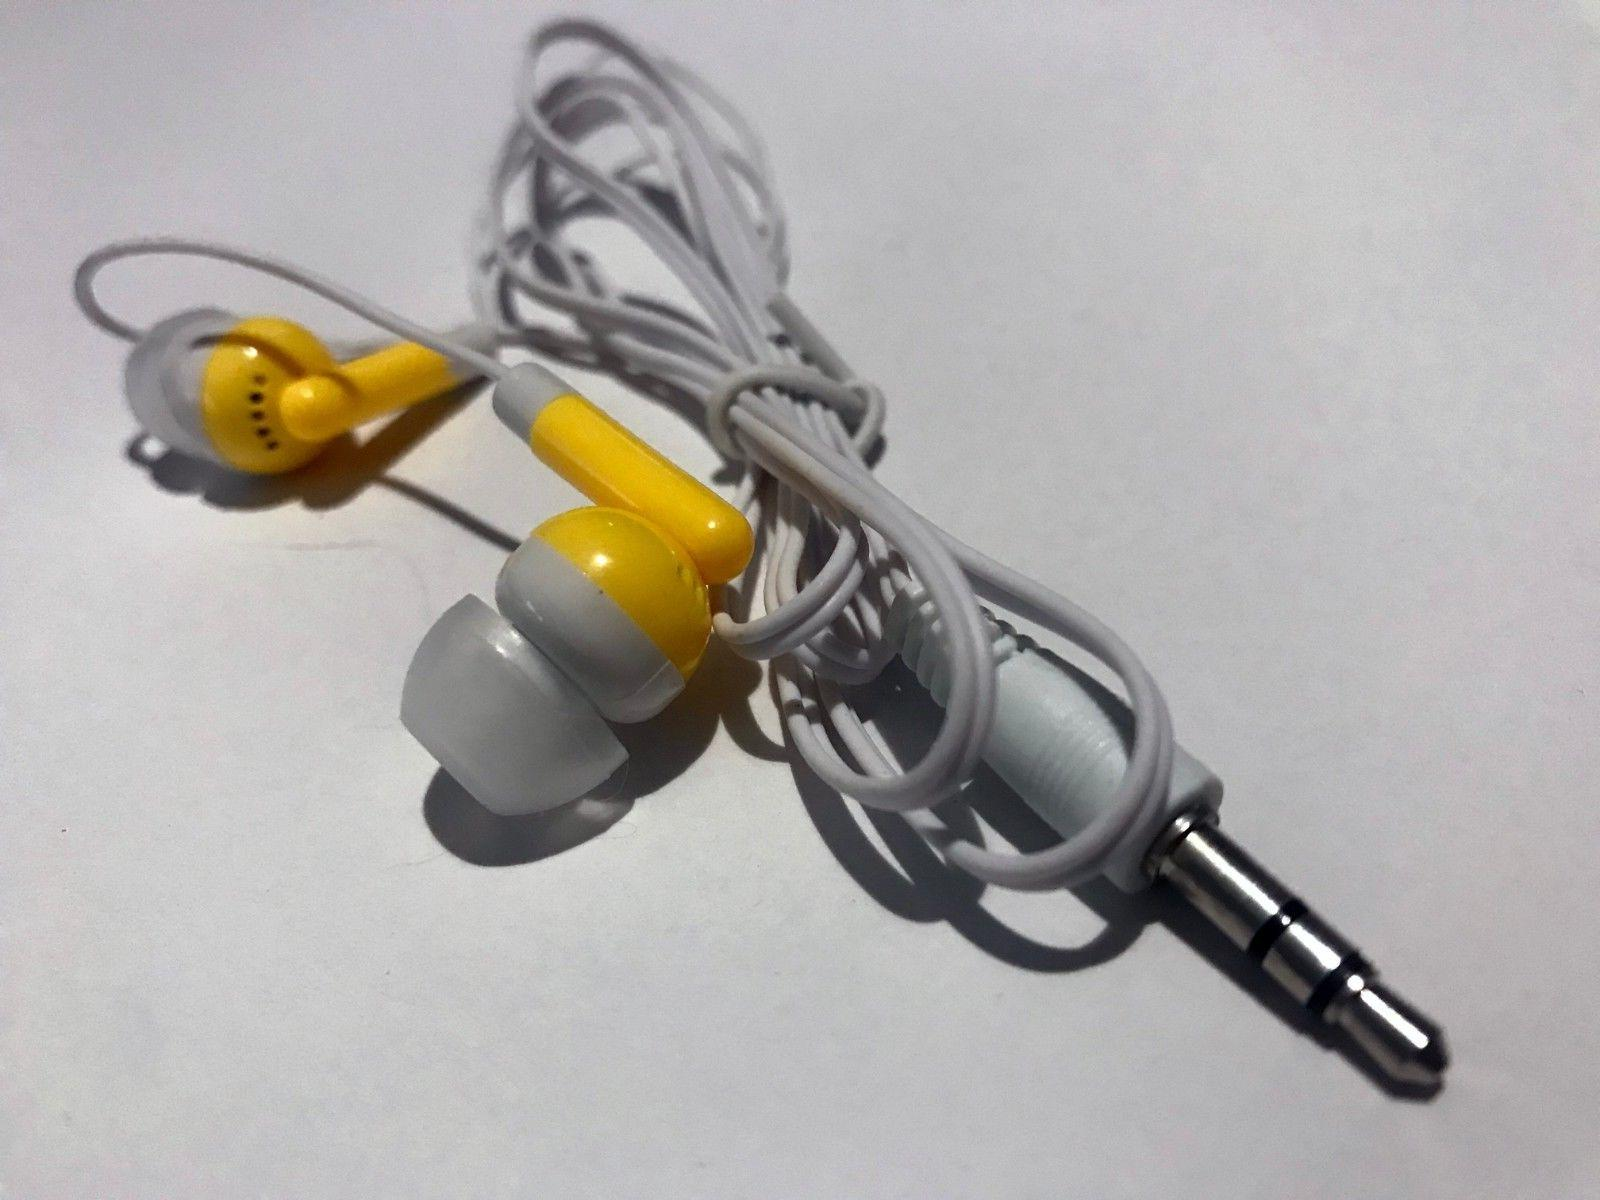 Bulk 25 3.5mm Earbuds / Earphones